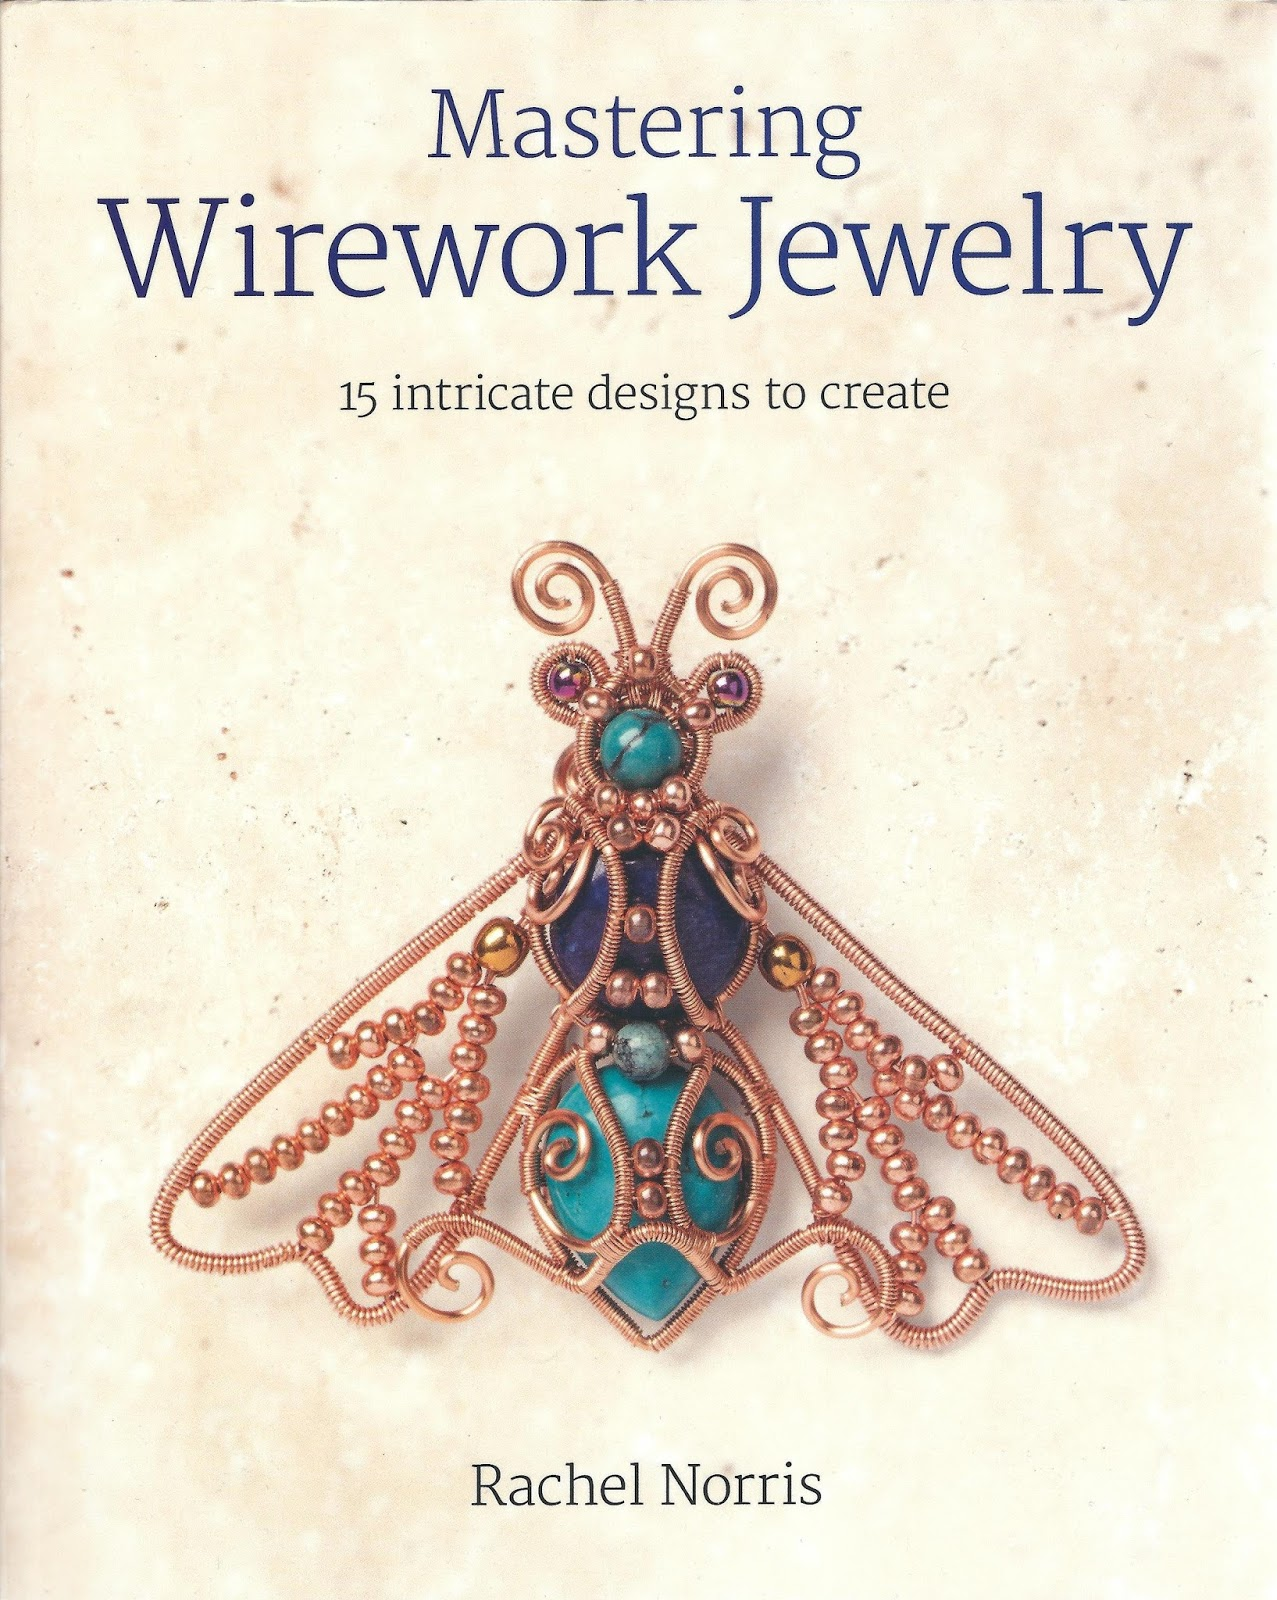 The Beading Library: Book review - Mastering Wirework Jewelry by ...